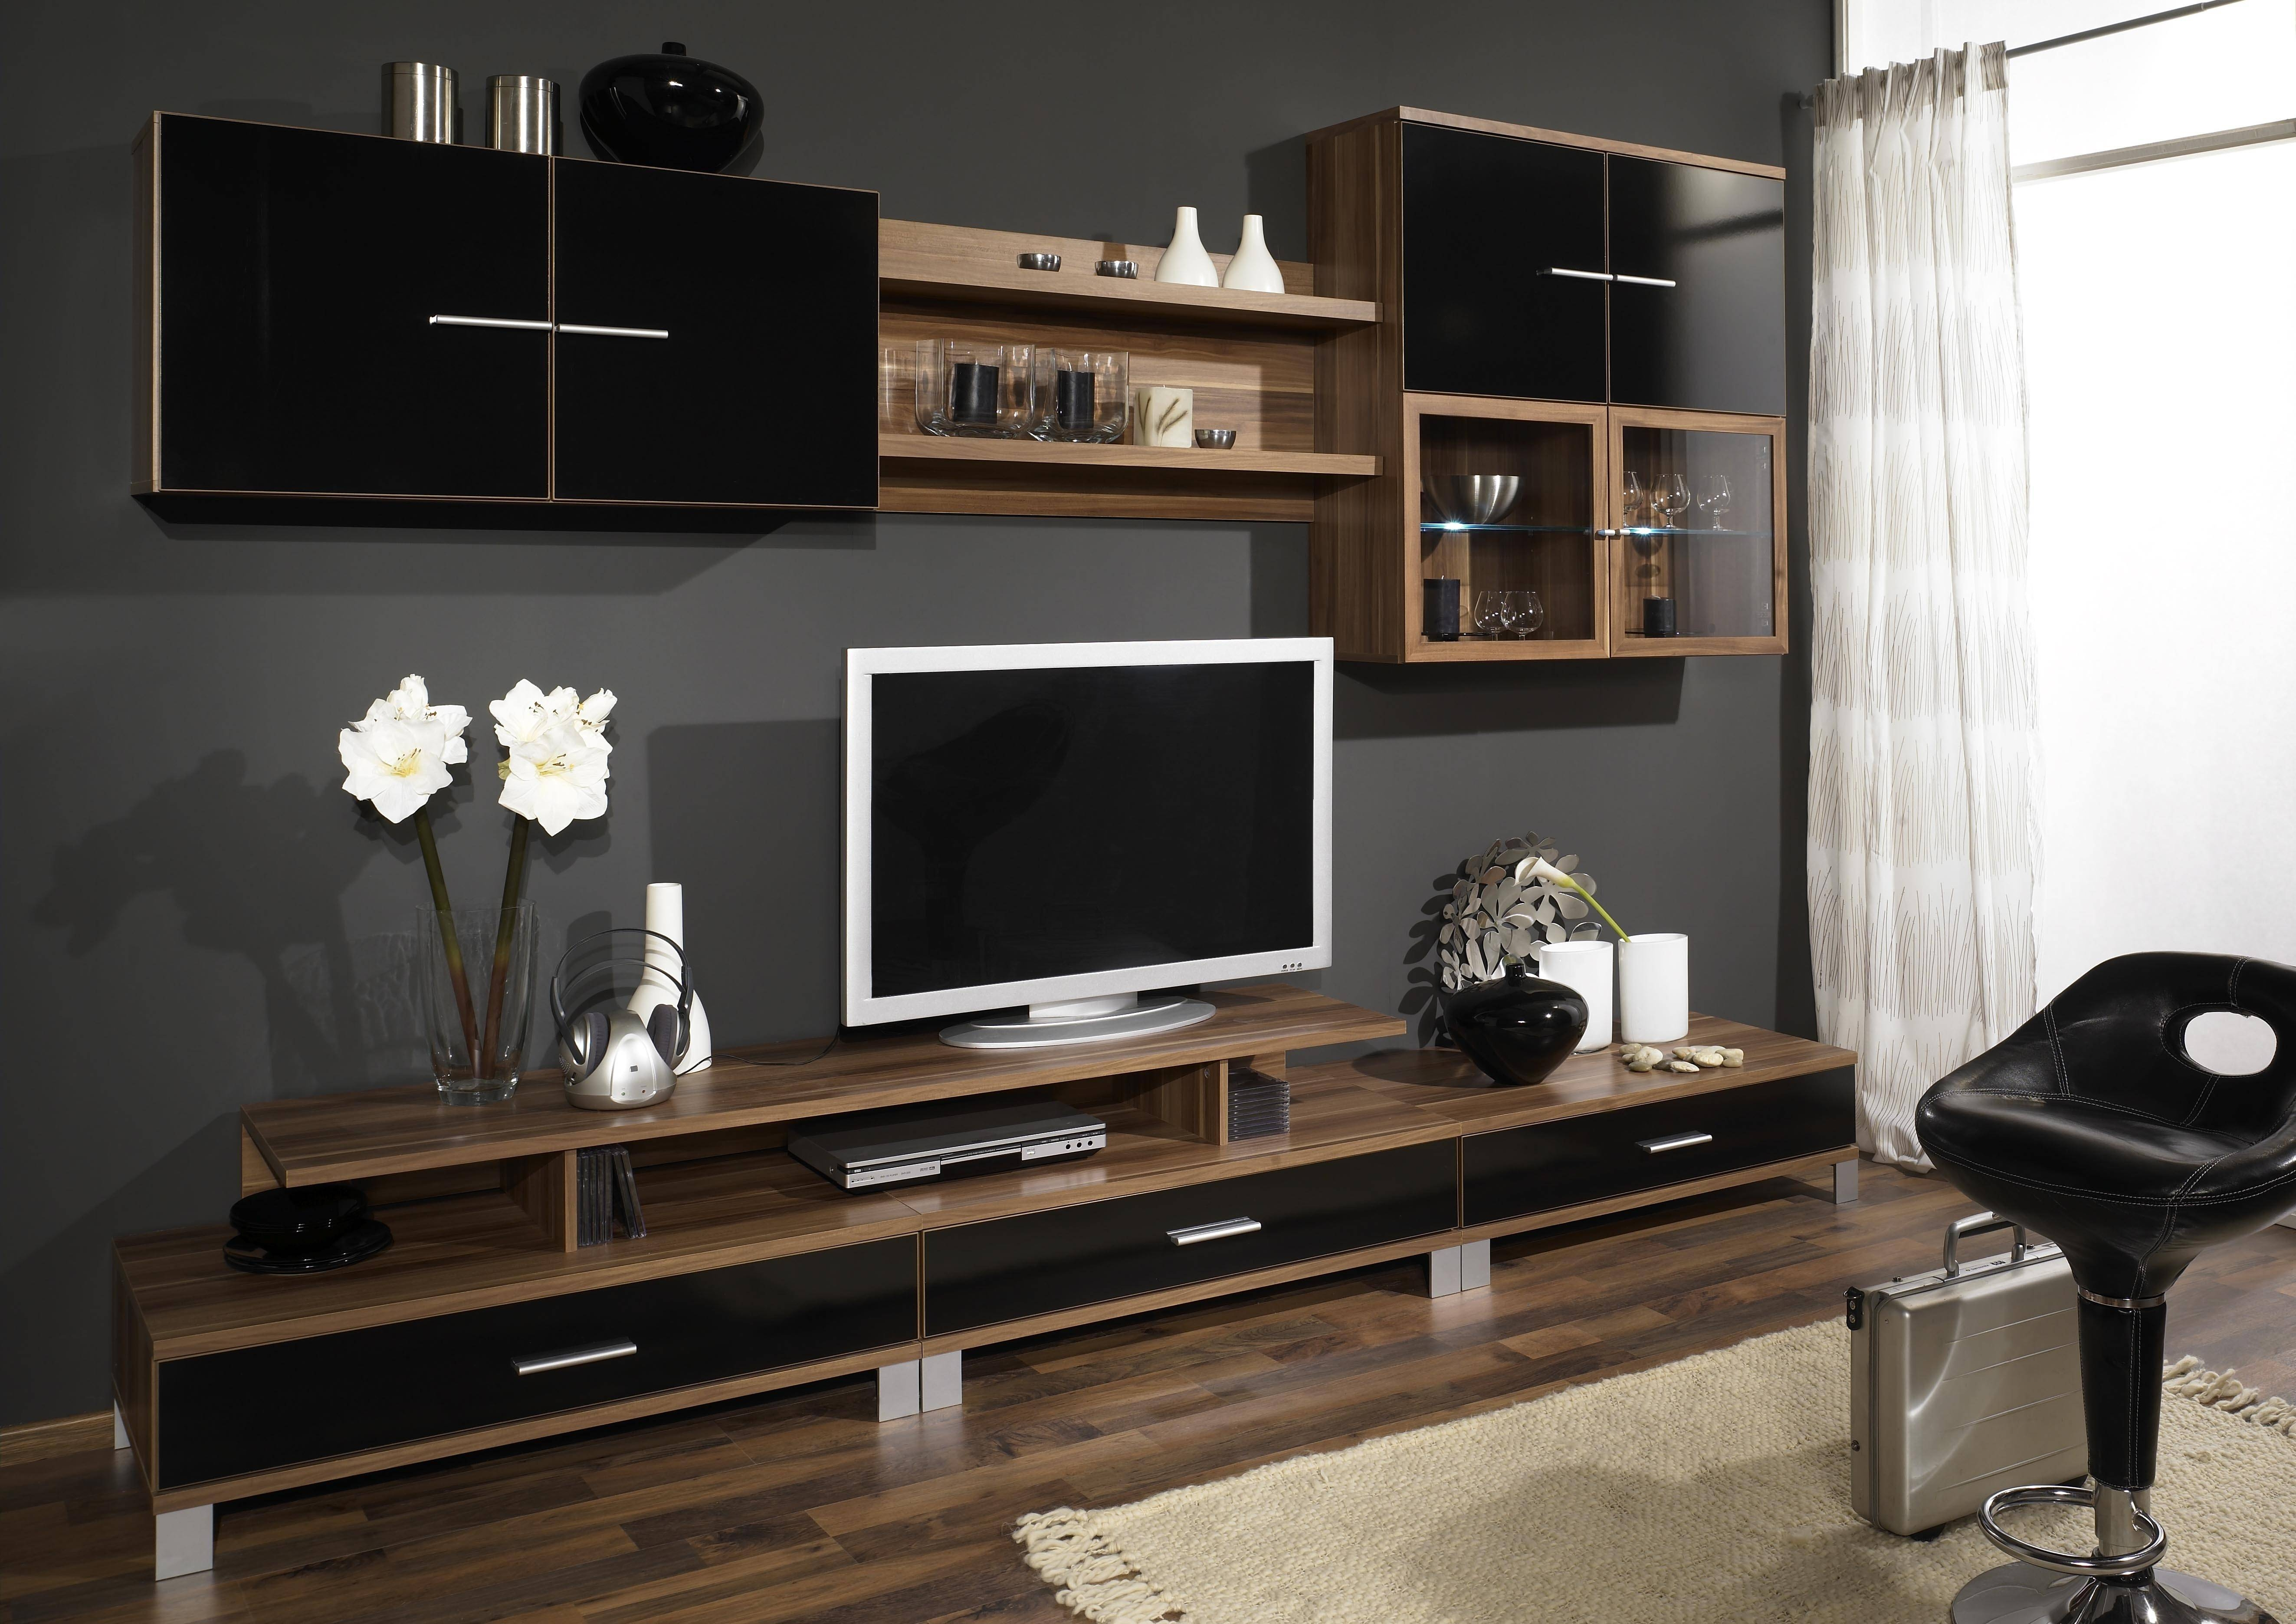 Interior Furniture Cabinets Wall Units Tv Wood Brown - Dining throughout Tv Cabinets And Wall Units (Image 6 of 15)